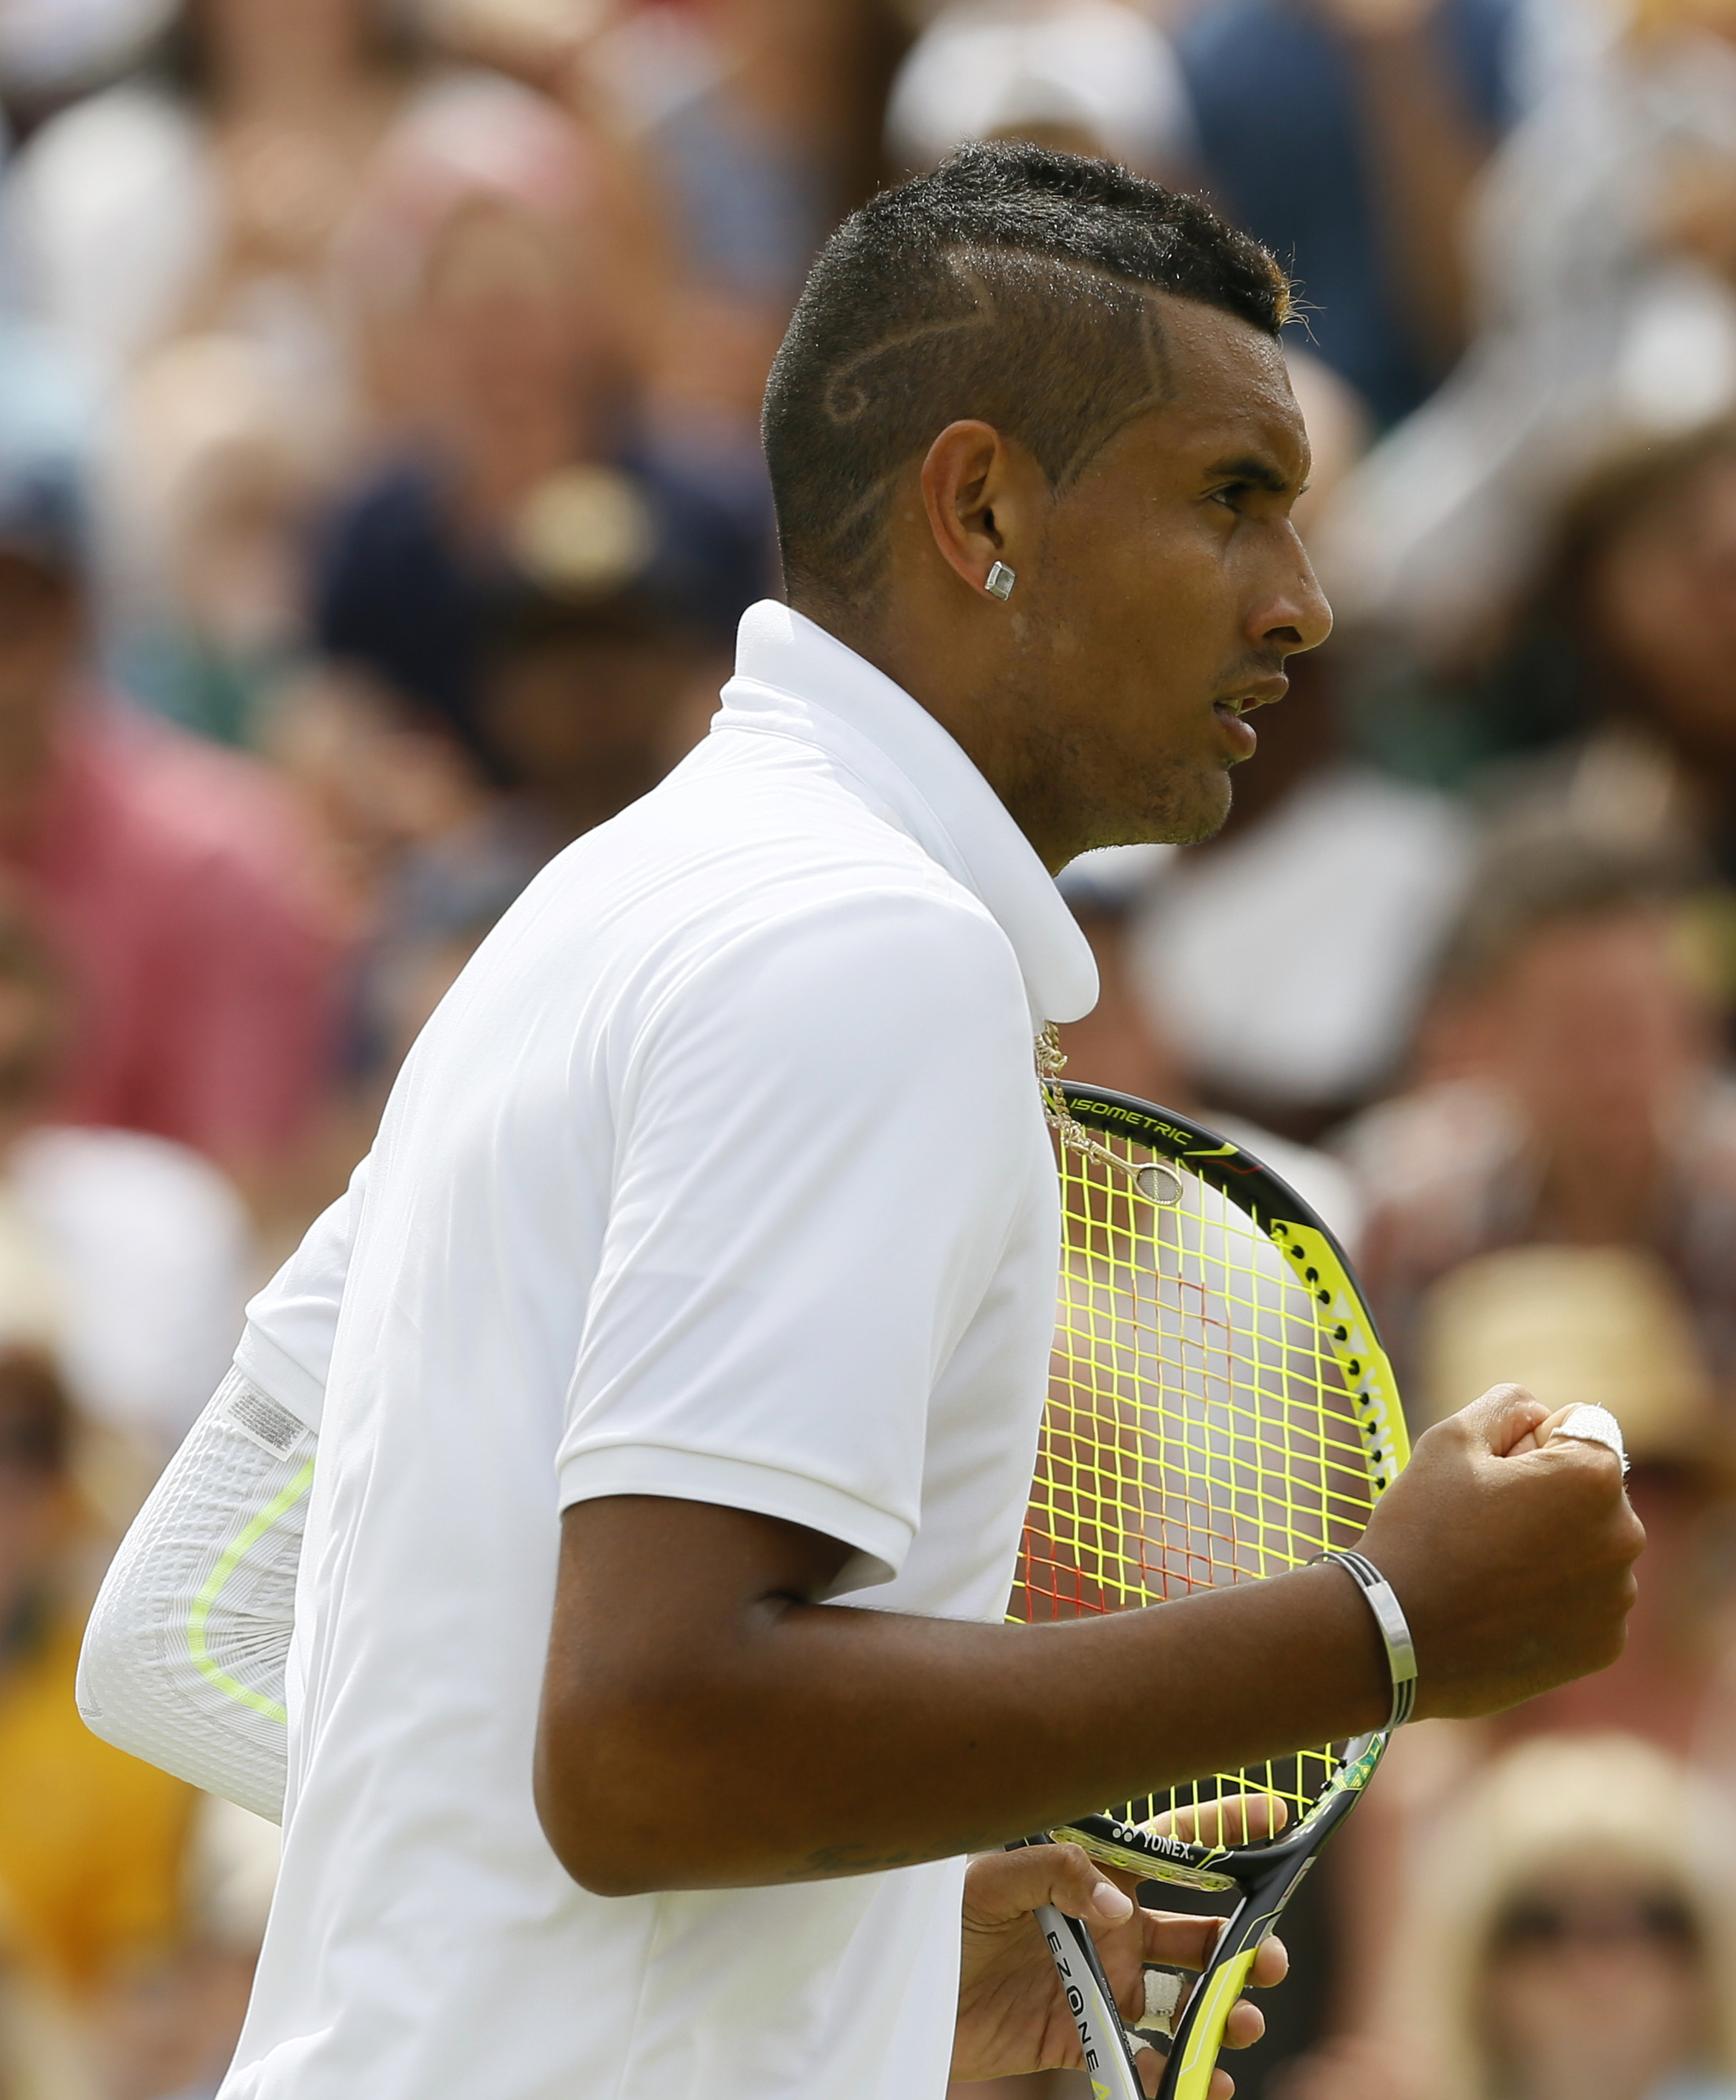 Nick Kyrgios of Australia celebrates winning a point against Richard Gasquet of France, during their singles match at the All England Lawn Tennis Championships in Wimbledon, London, Monday July 6, 2015. (AP Photo/Kirsty Wigglesworth)